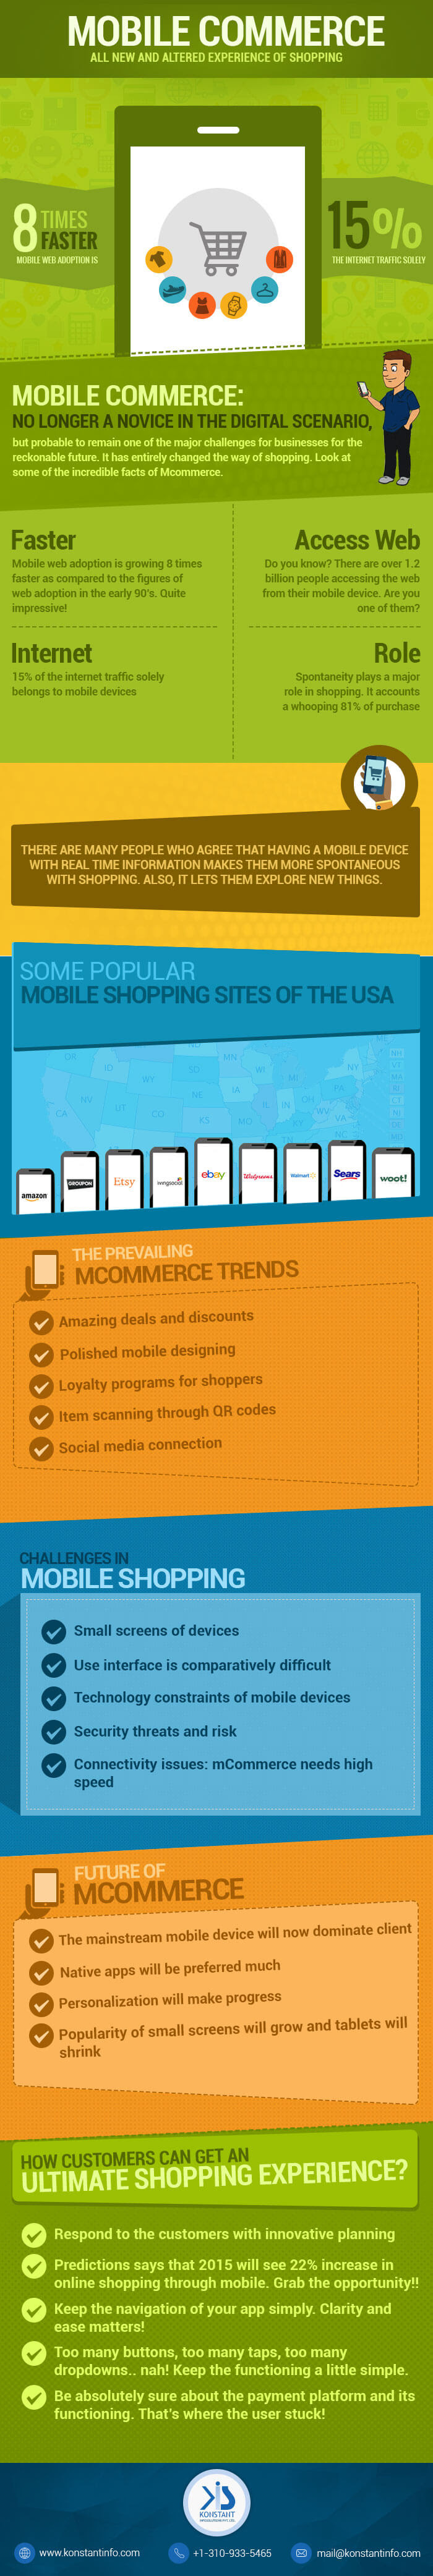 mCommerce Development - An Altered Online Shopping Experience 2015